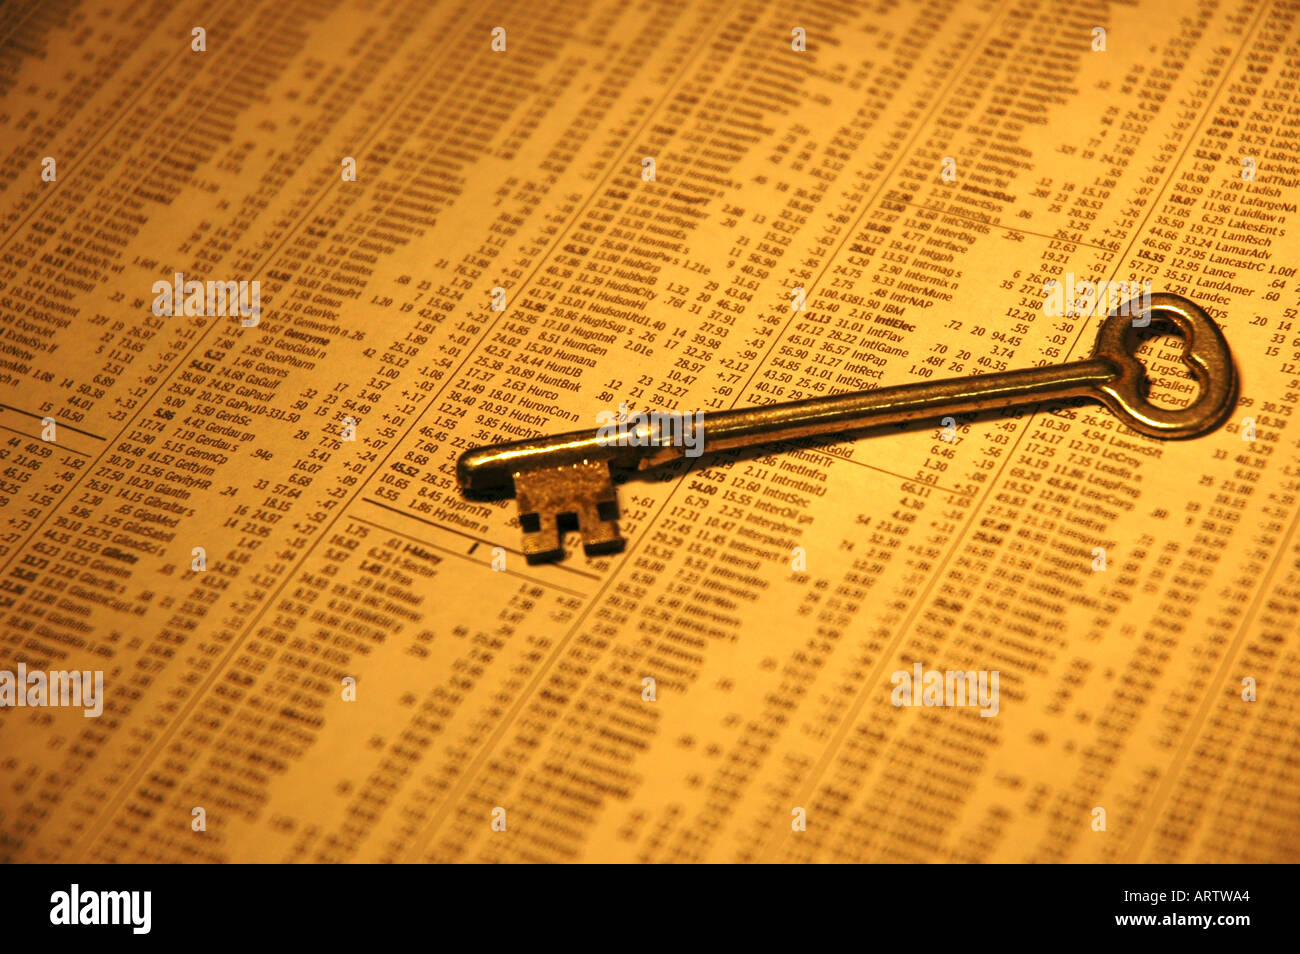 C Stock Quote Key To The Market  Old Key Sitting On Newspaper Stock Quotes